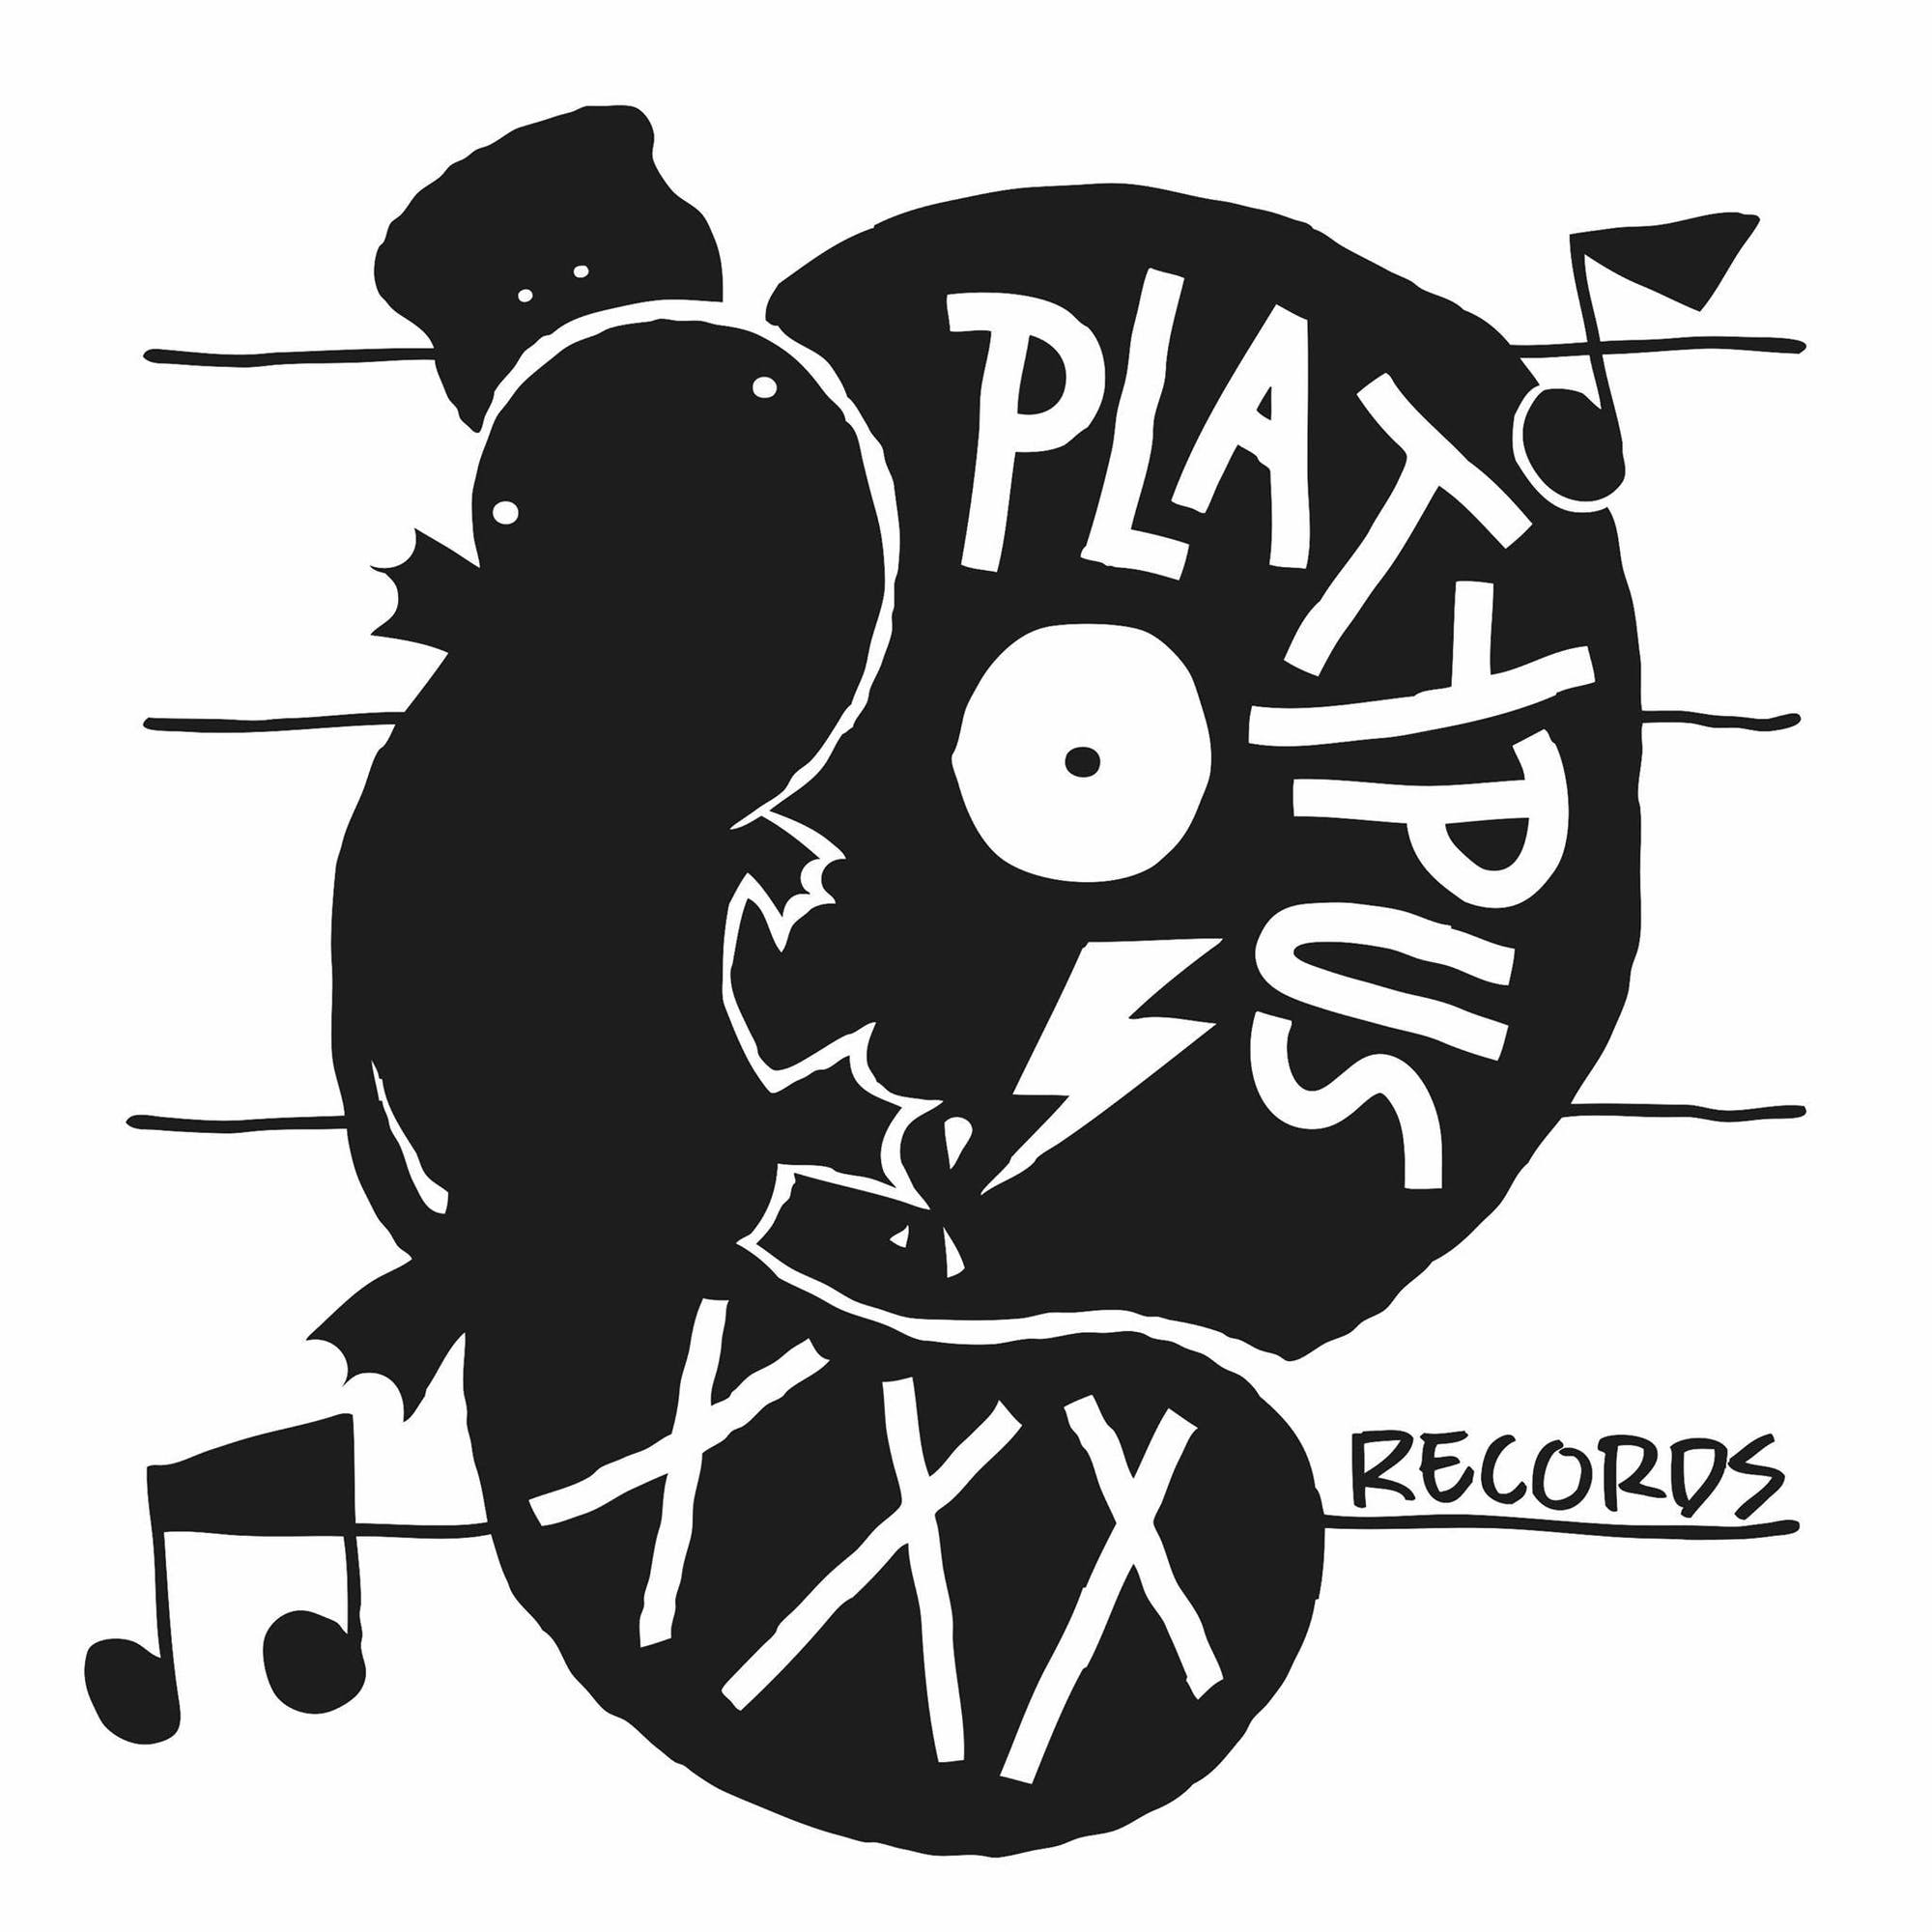 Platypus Records - Record Store Image